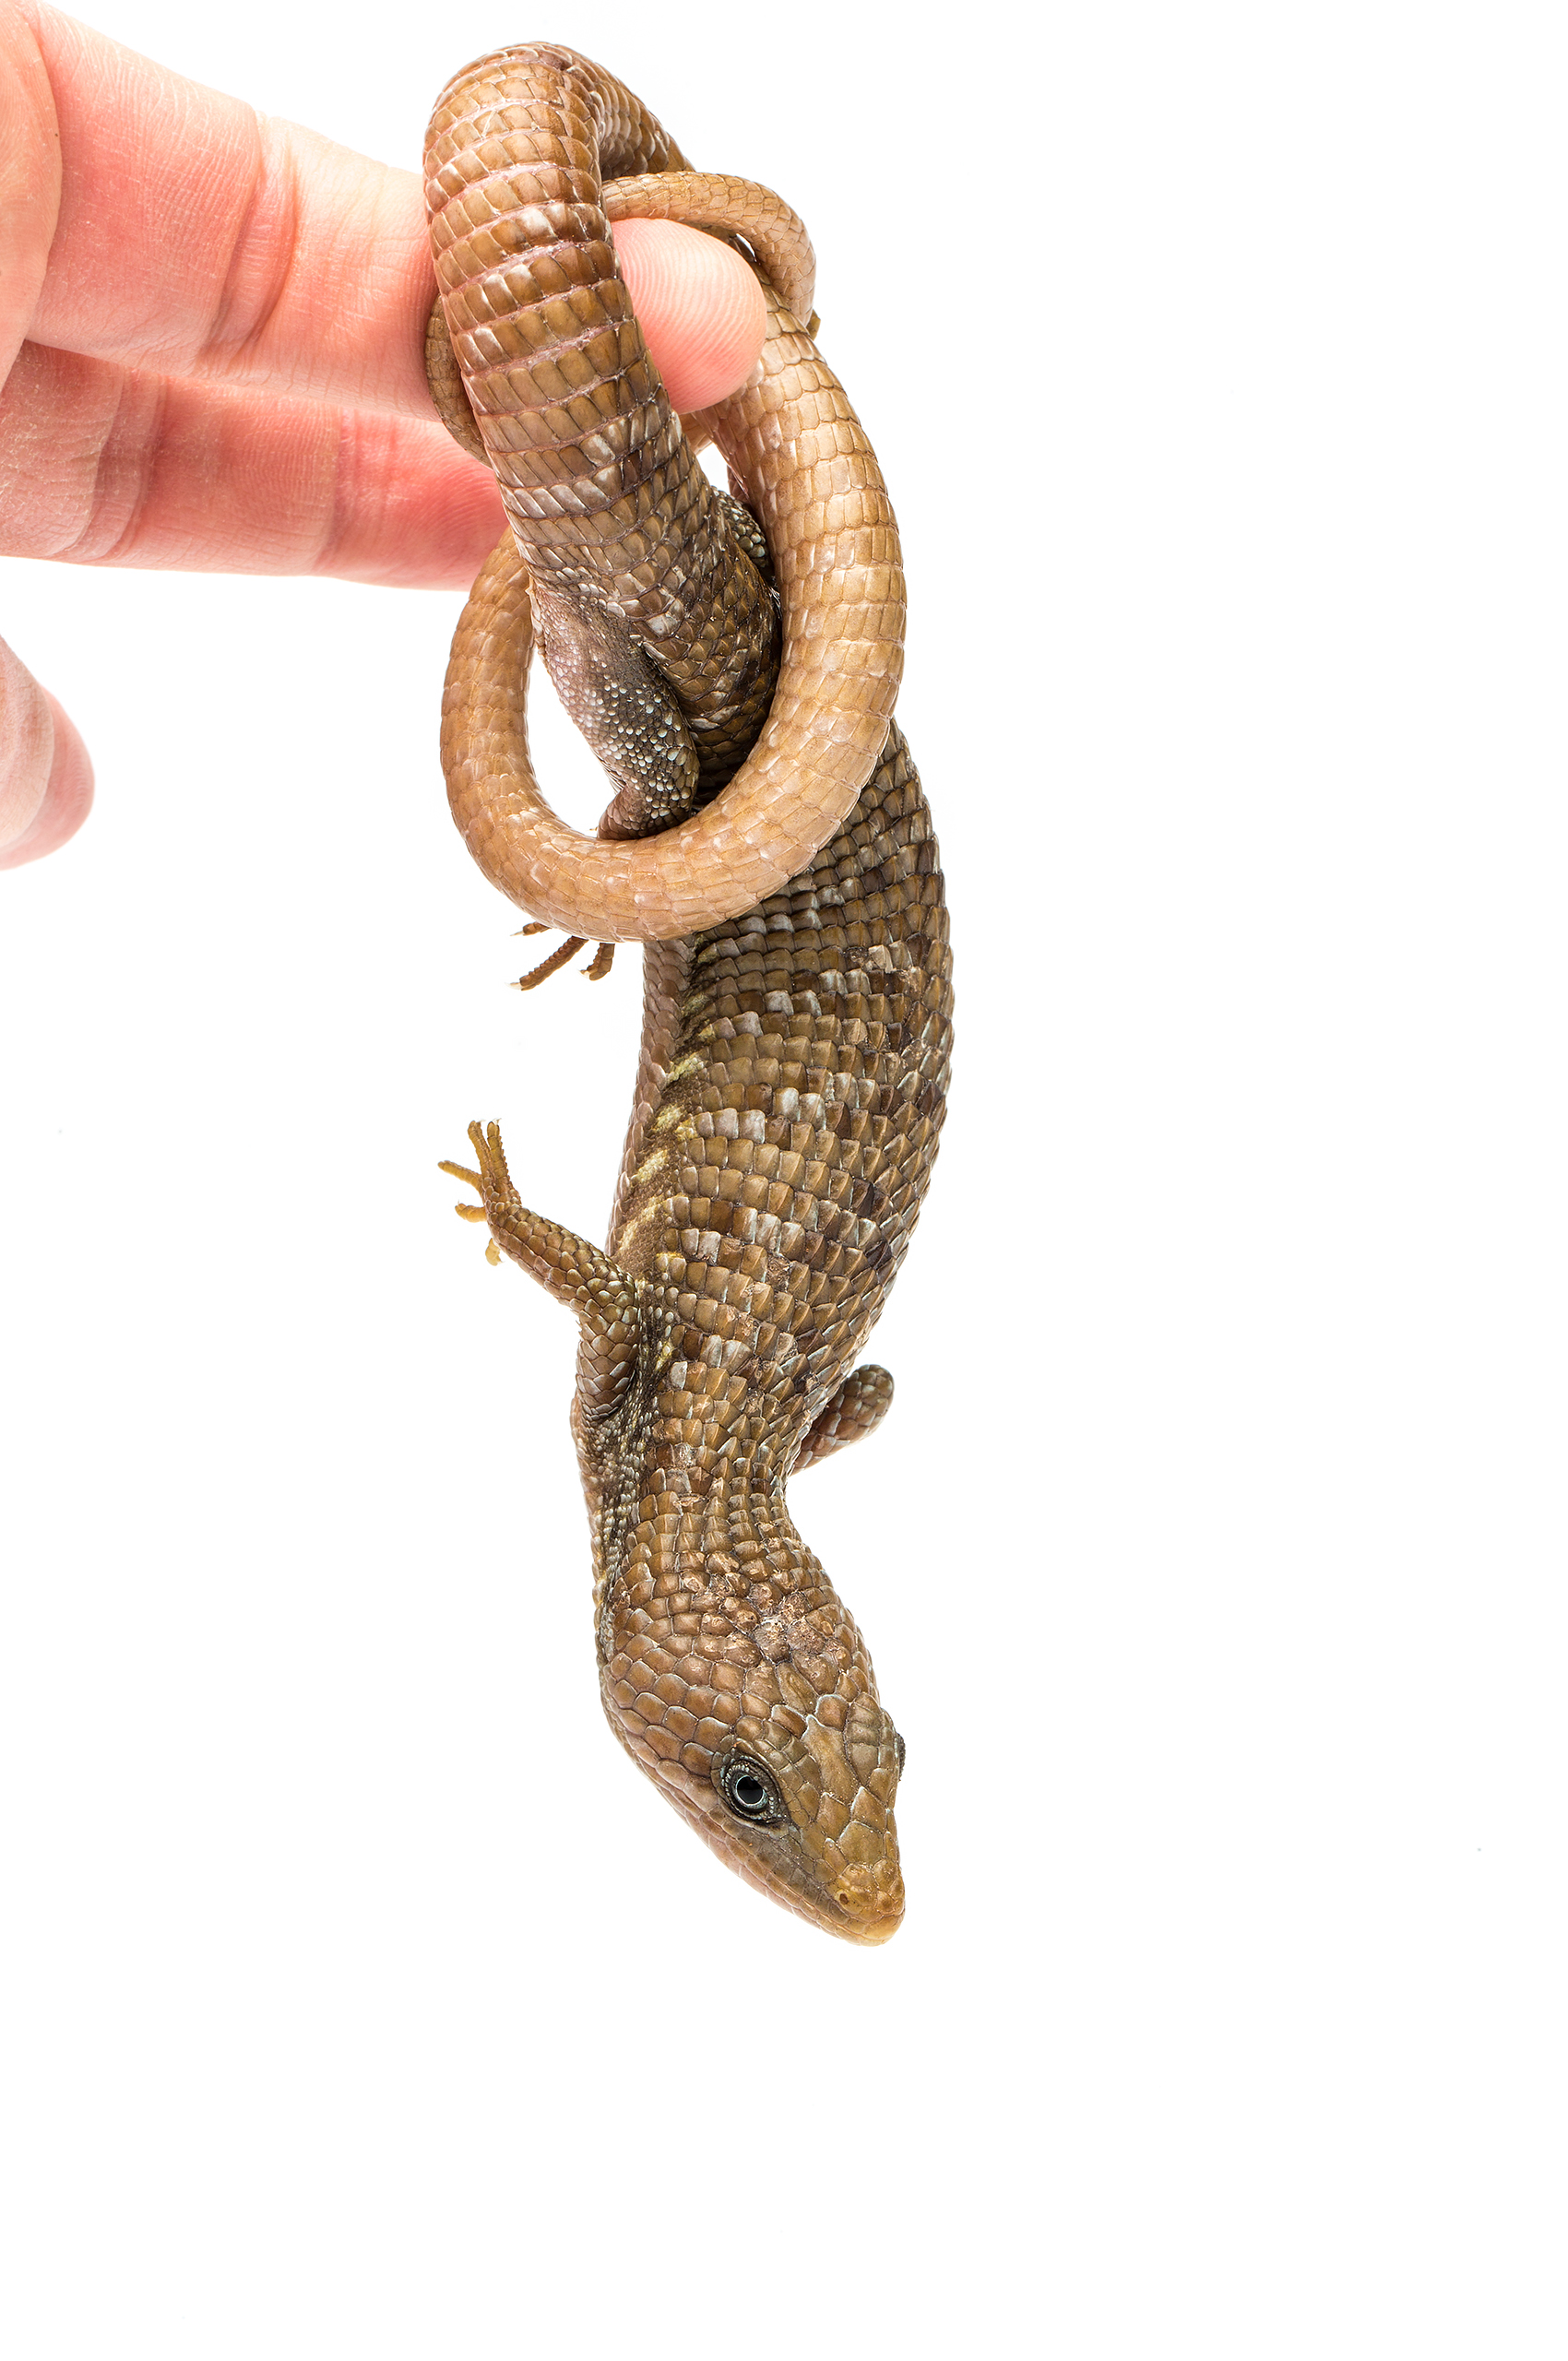 Adult male Texas alligator lizard